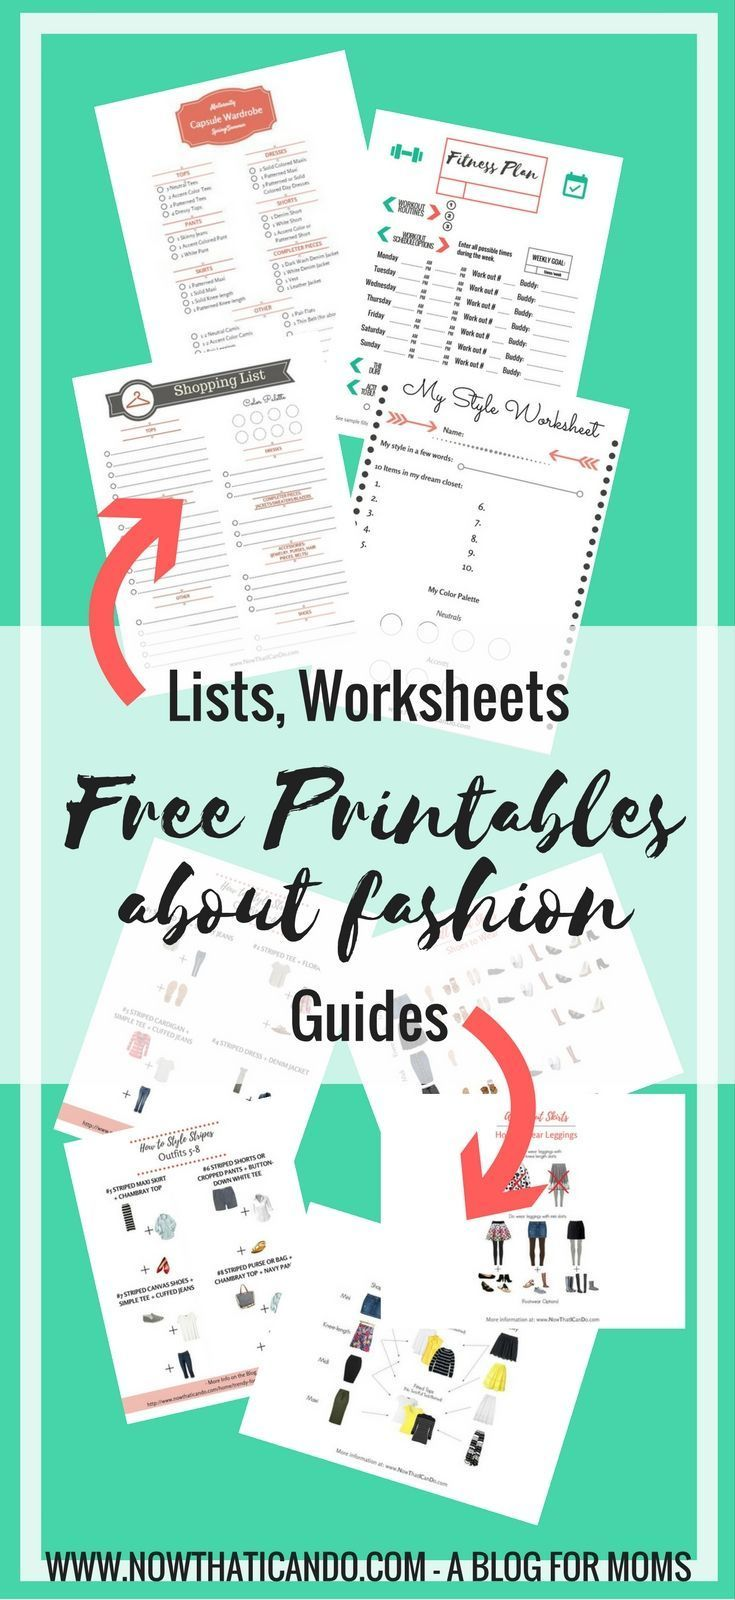 """Looking for easy mom fashion inspiration? This blogger provides it all on her blog """"for moms fighting the frumpy monster."""" Find free Printable Guides, Worksheets, and Checklists about Mom Fashion, Finding Your Style, Do's and Dont's of Fashion, and Organization. Each printable comes with a blog post that explains how to use it. Click through to see the full gallery."""